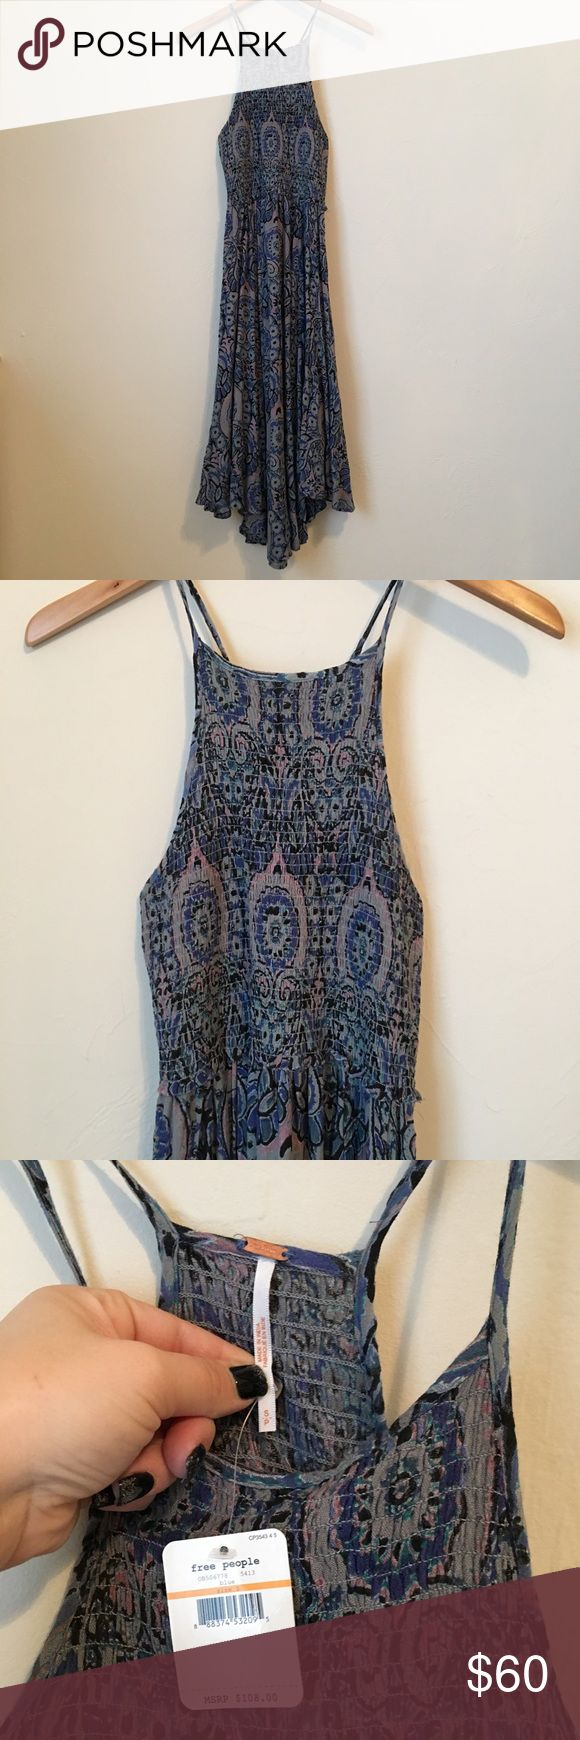 NWT Free People Maxi Dress Tight fitting bodice with Flowy skirt with dark pattern and handkerchief hemline. NEW WITH TAGS Free People Dresses